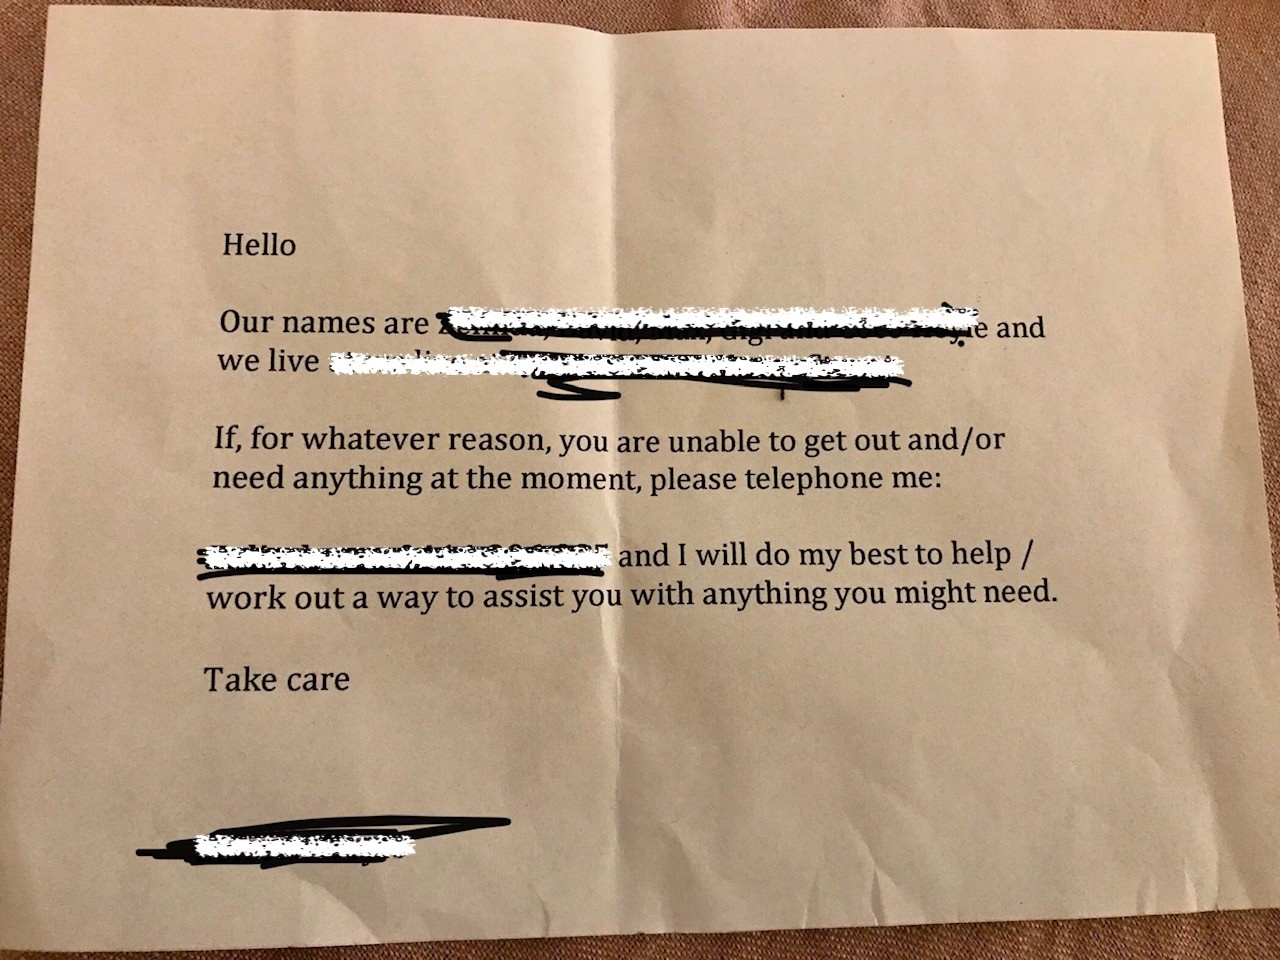 Countless acts of kindness are hitting the news and being spread on social media. Neighbours are leaving notes in each other's letterboxes offering help to those in need. Image: courtesy of Laura Cozzolino